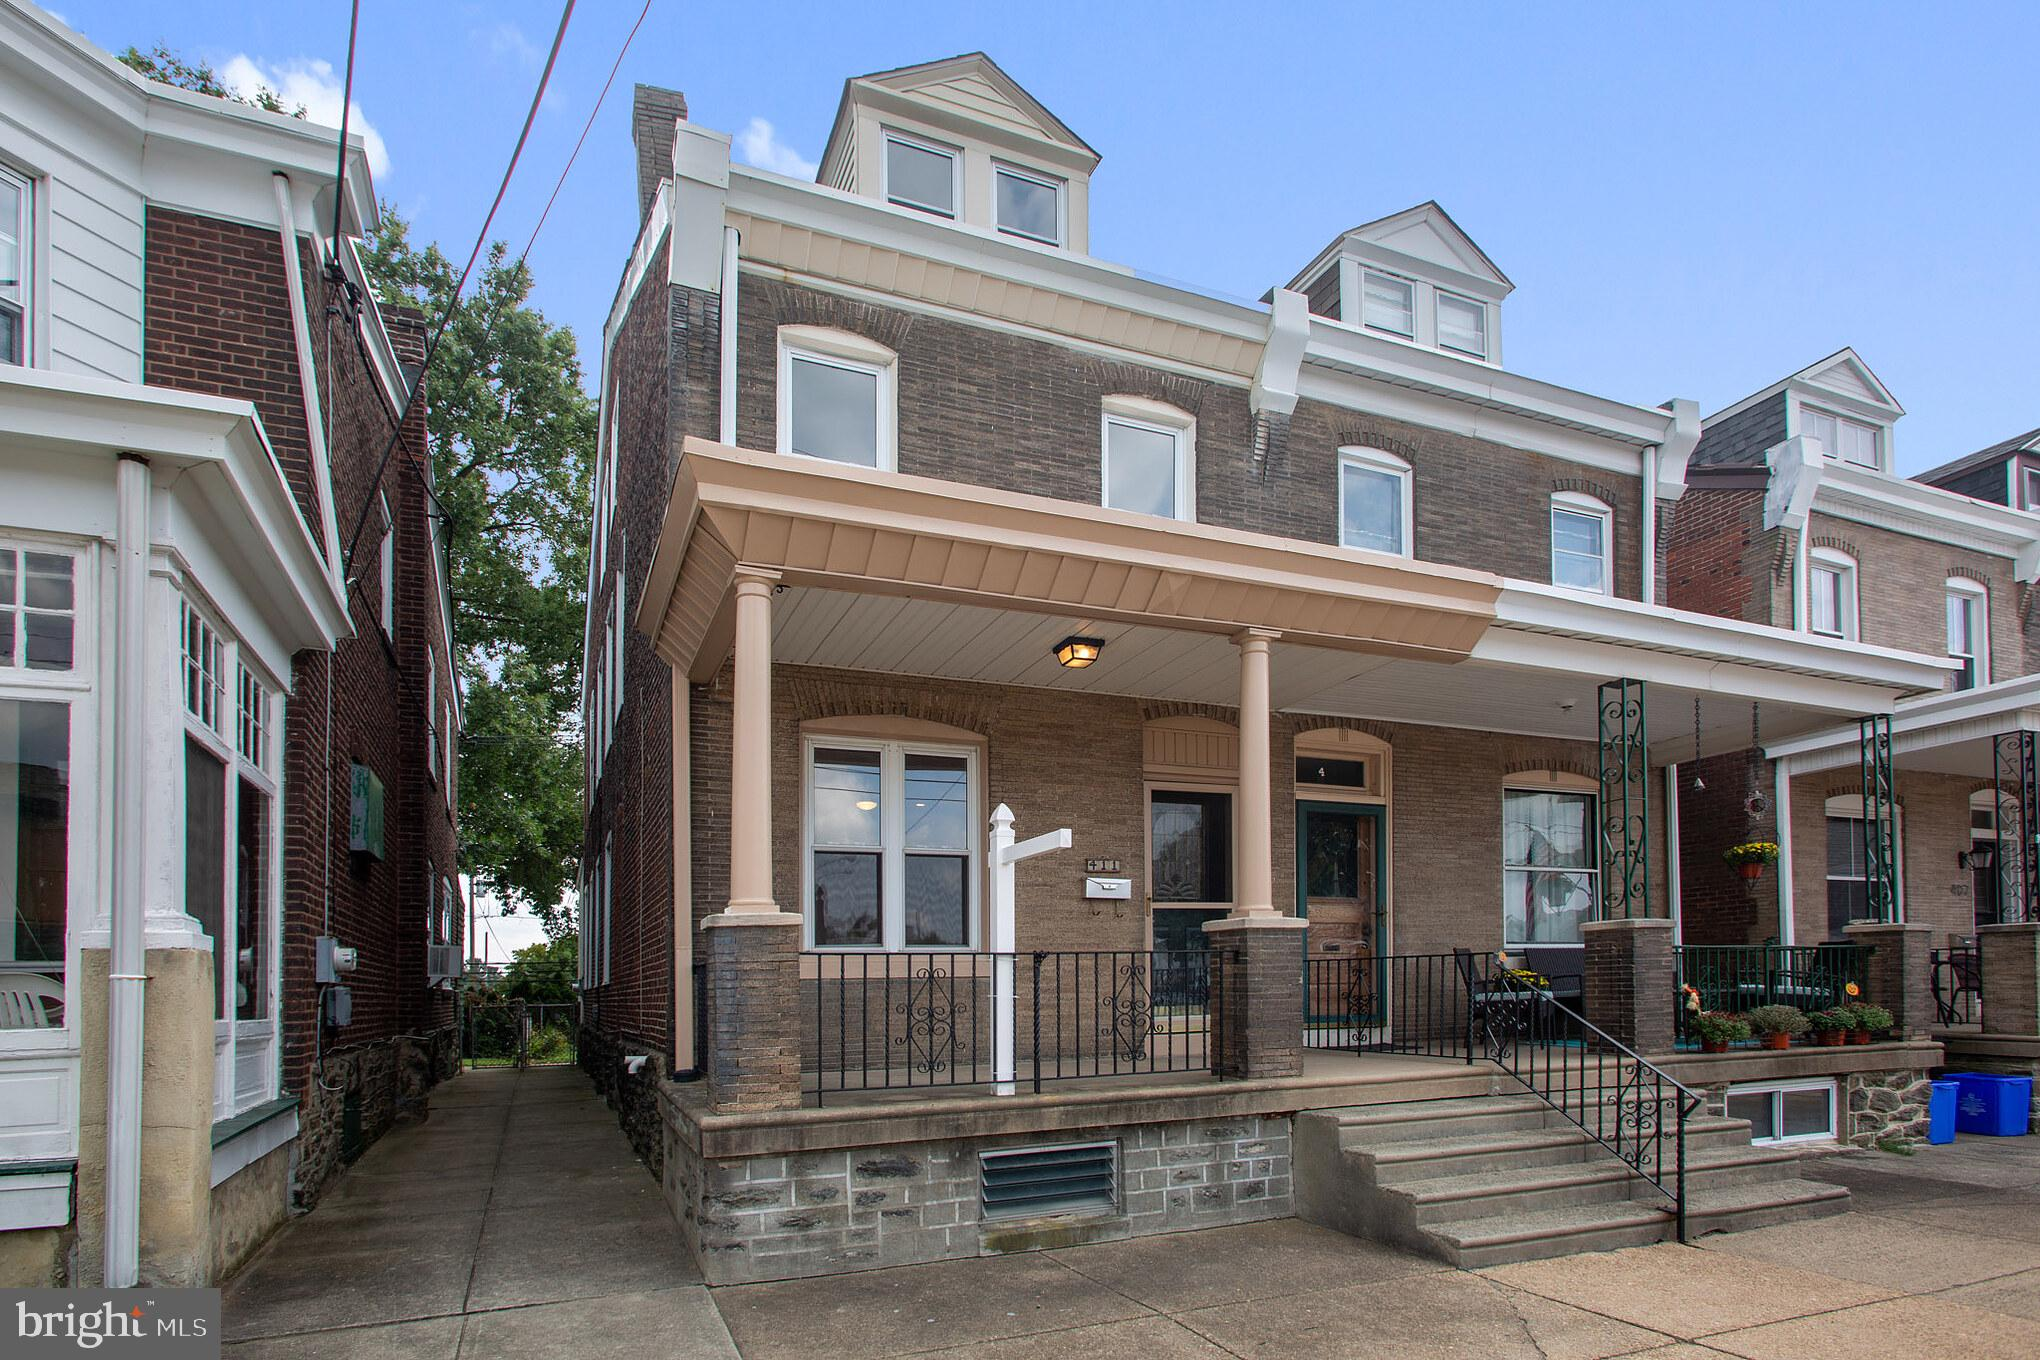 411 Rector Street, Philadelphia, PA 19128 | RE/MAX Allegiance on tube terminals, tube fuses, tube dimensions, tube assembly,